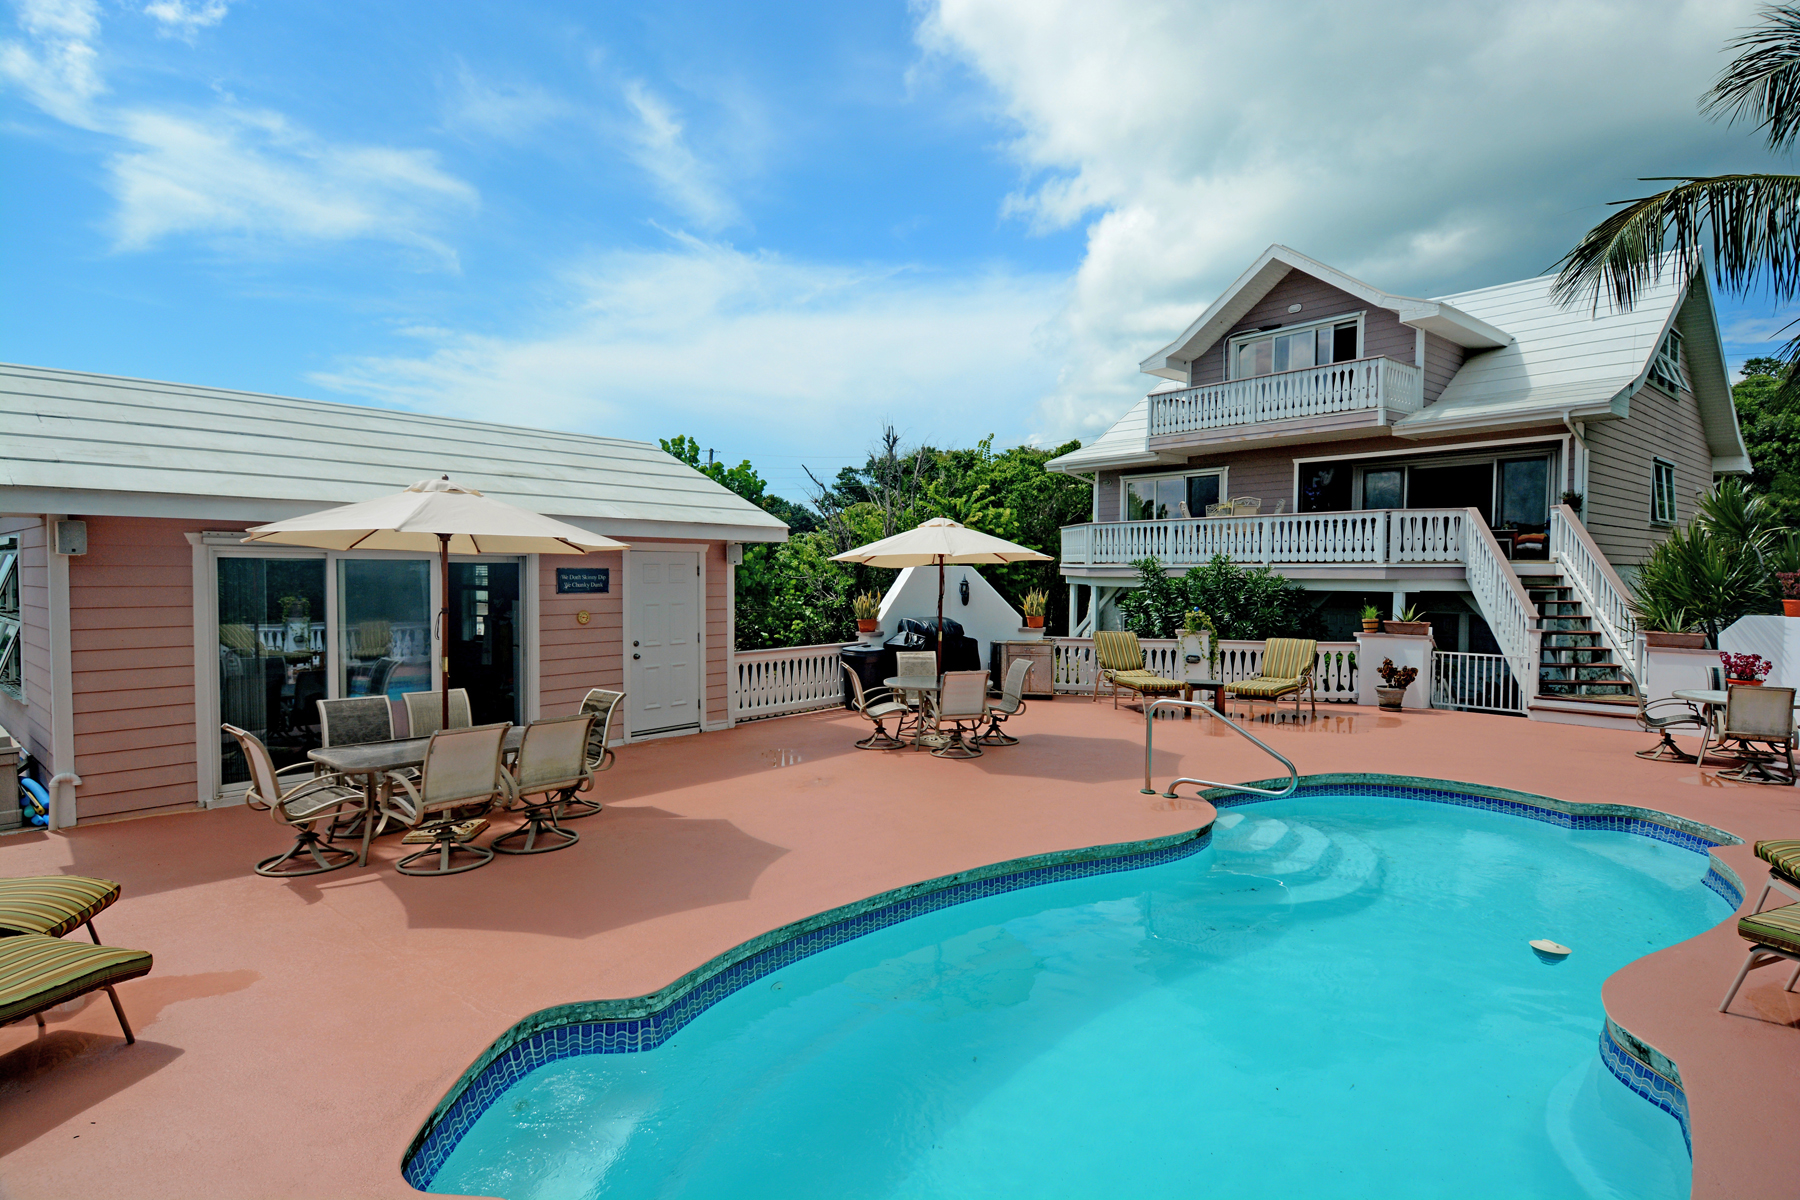 Multi-Family Home for Sale at Scandinavia House High Rocks, Marsh Harbour, Abaco Bahamas